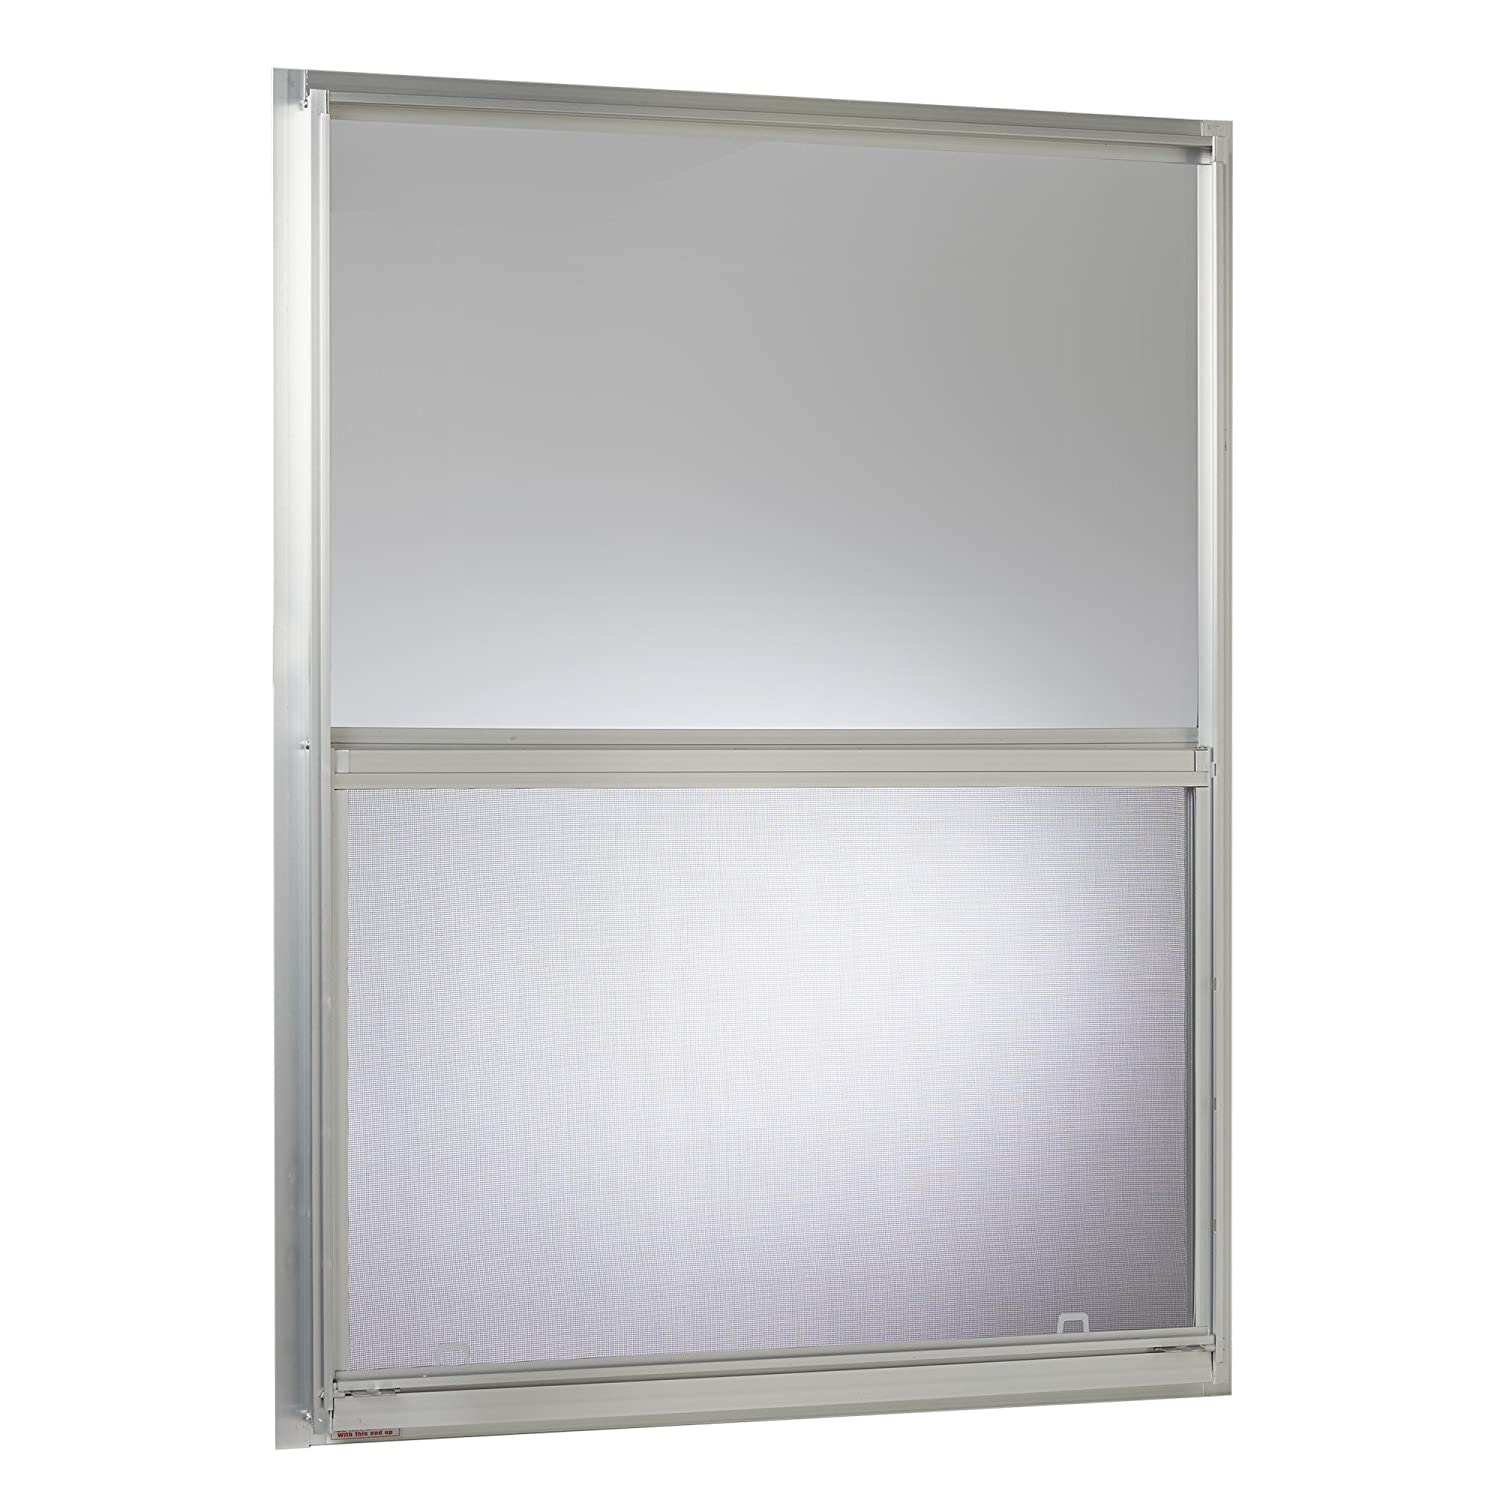 Aluminum Mobile Home Single Hung Window x 40 in Silver Park Ridge Products AMHMF3040PR Park Ridge Mill Finish 30 in